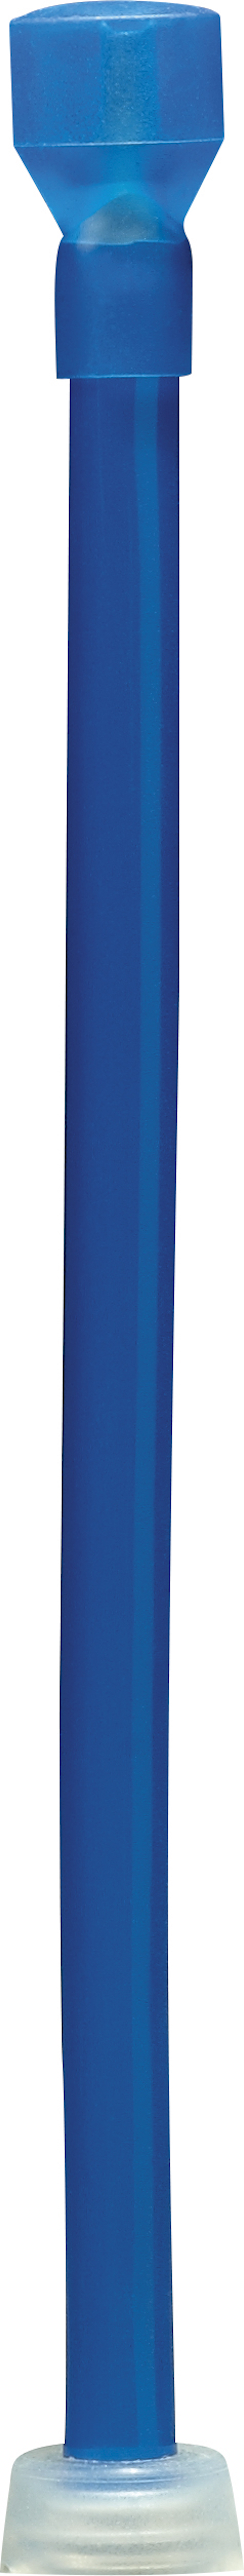 Camelbak Flask Tube Adapter pour gourdes Quick Stow - Pipette